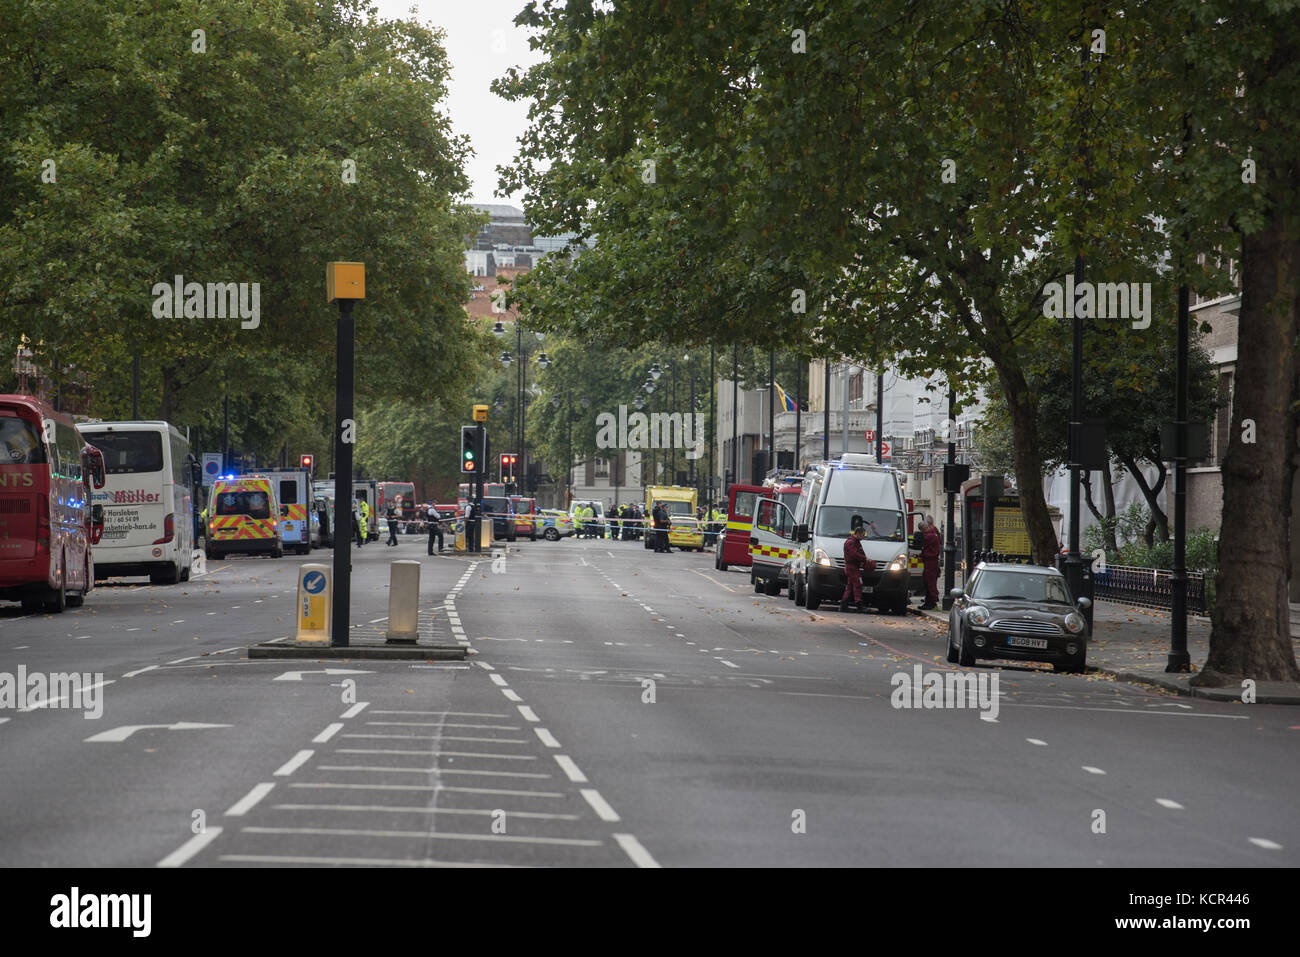 London, UK. 7th Oct, 2017. Multiple injuries reported in on-going police incident outside London's V & A - Stock Image